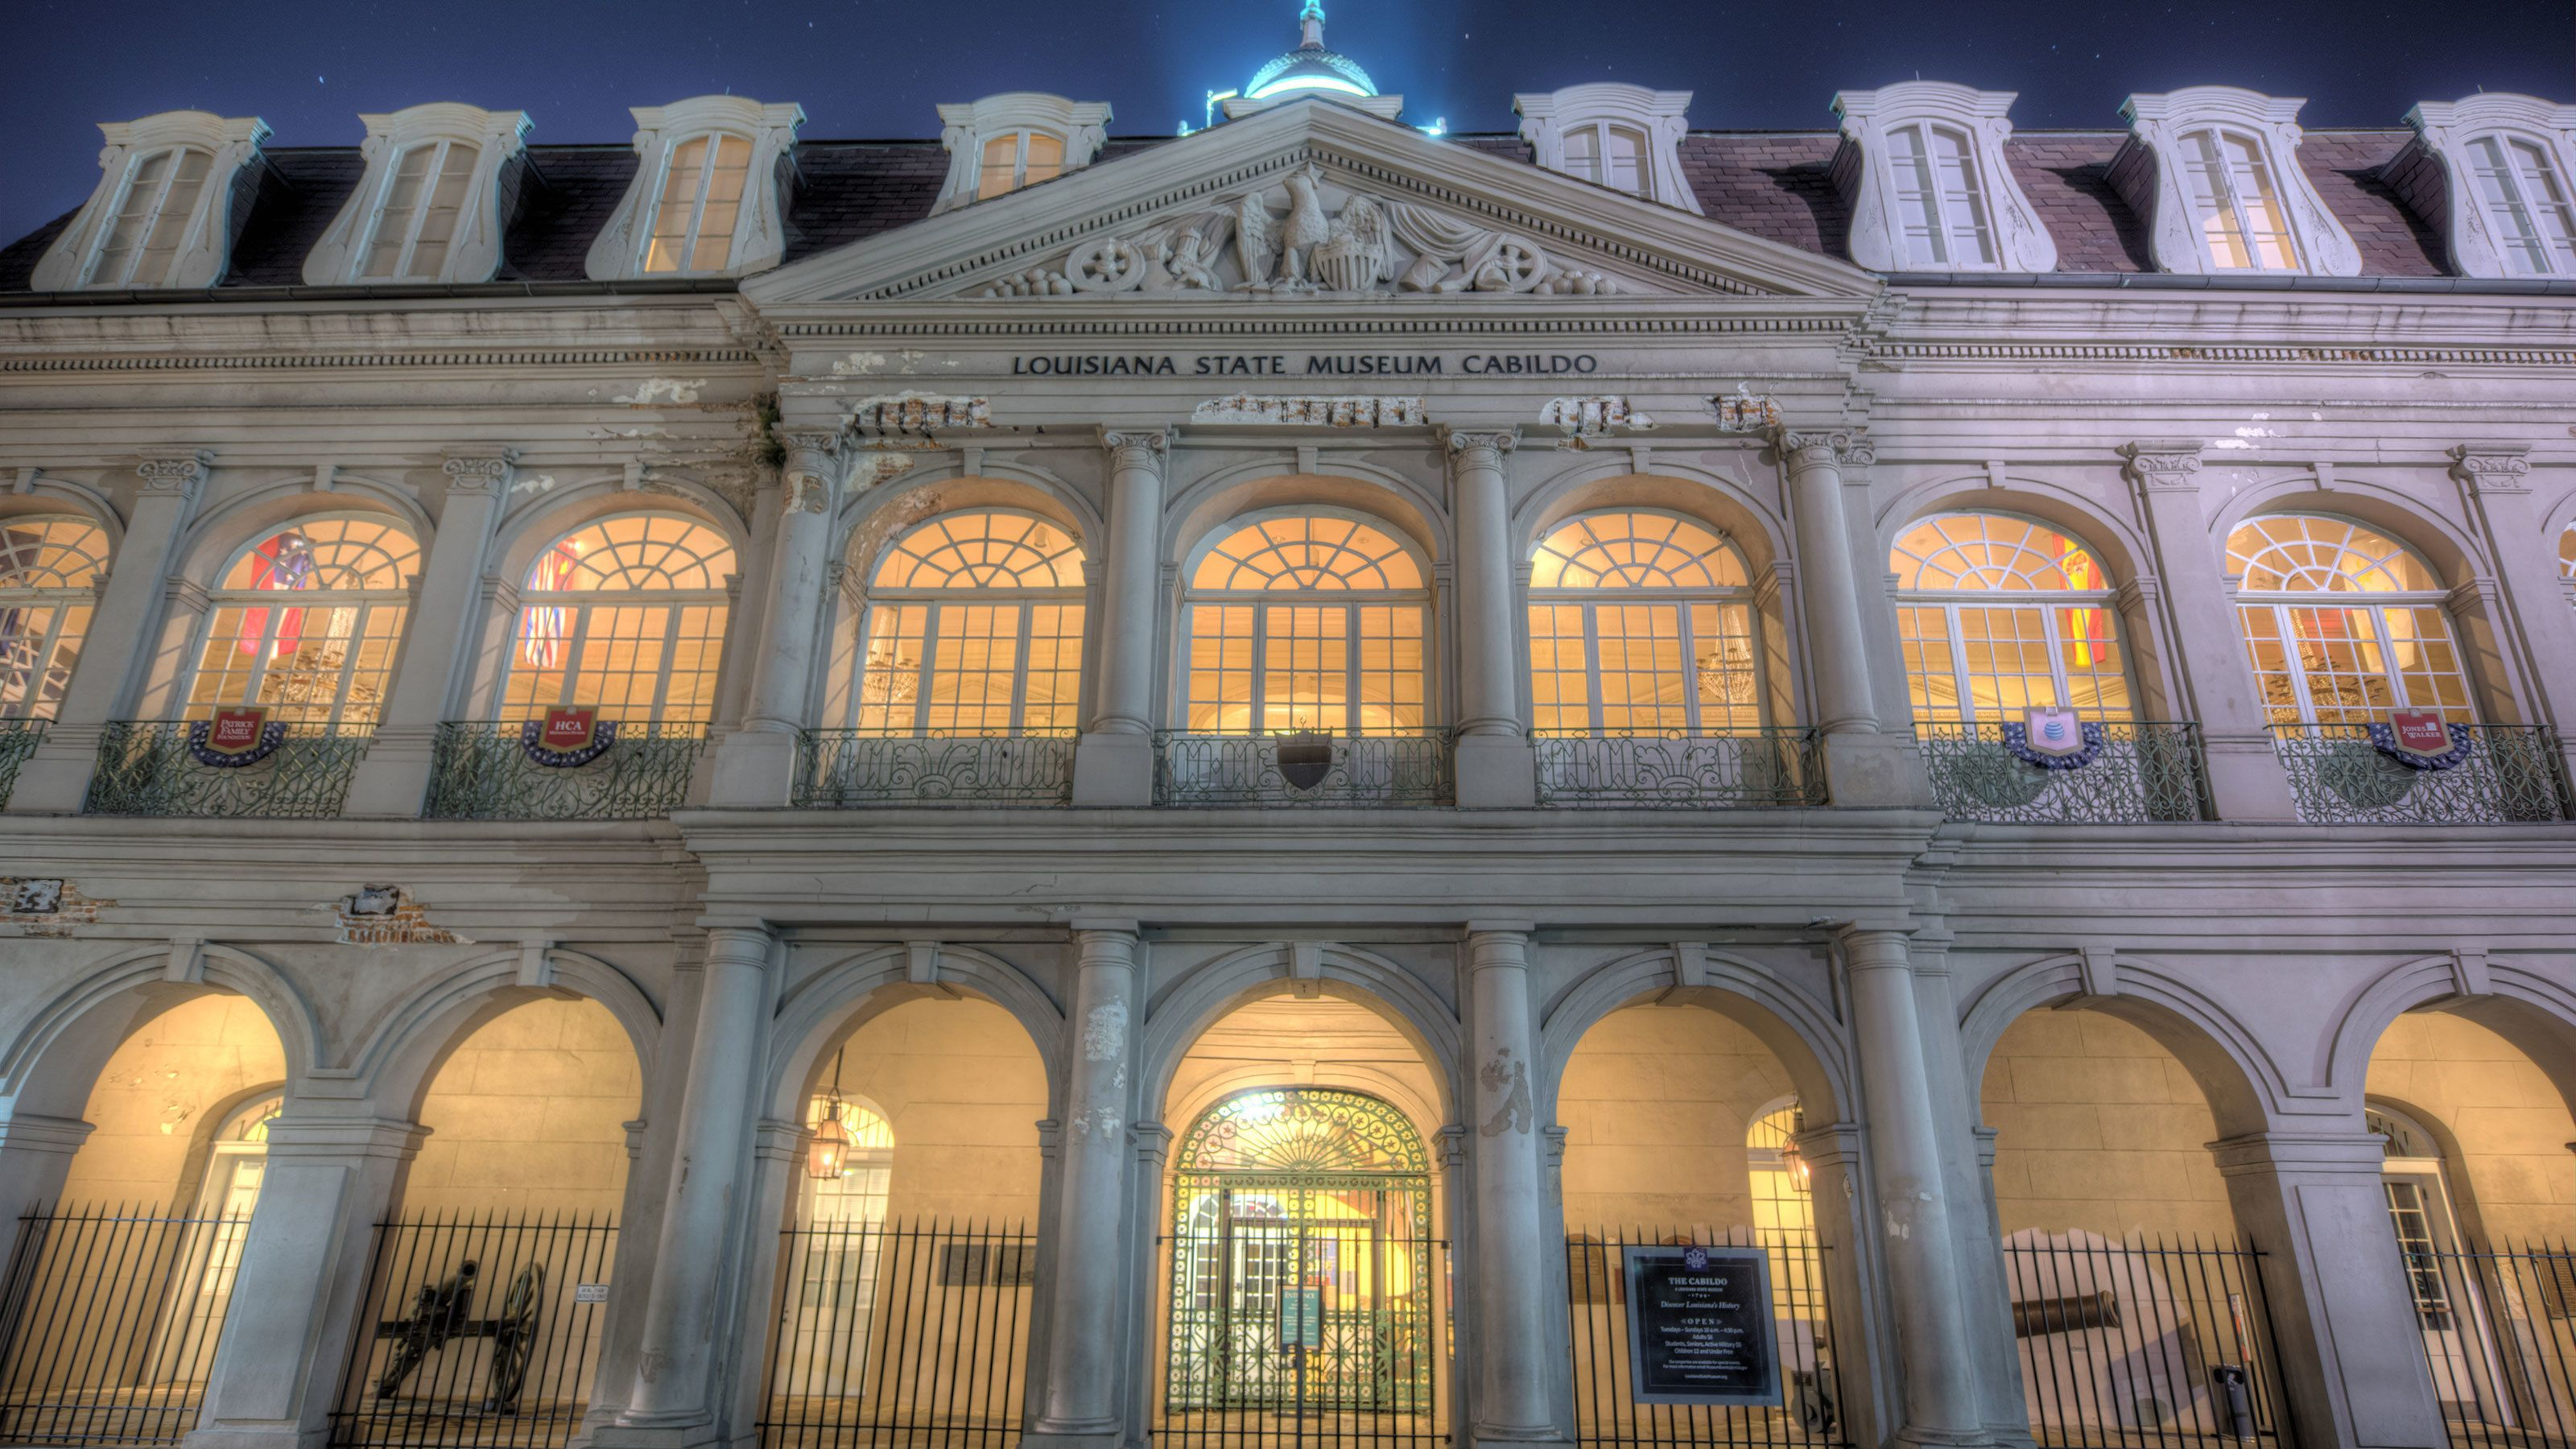 The front of the Bourbon Orleans Hotel at night in New Orleans